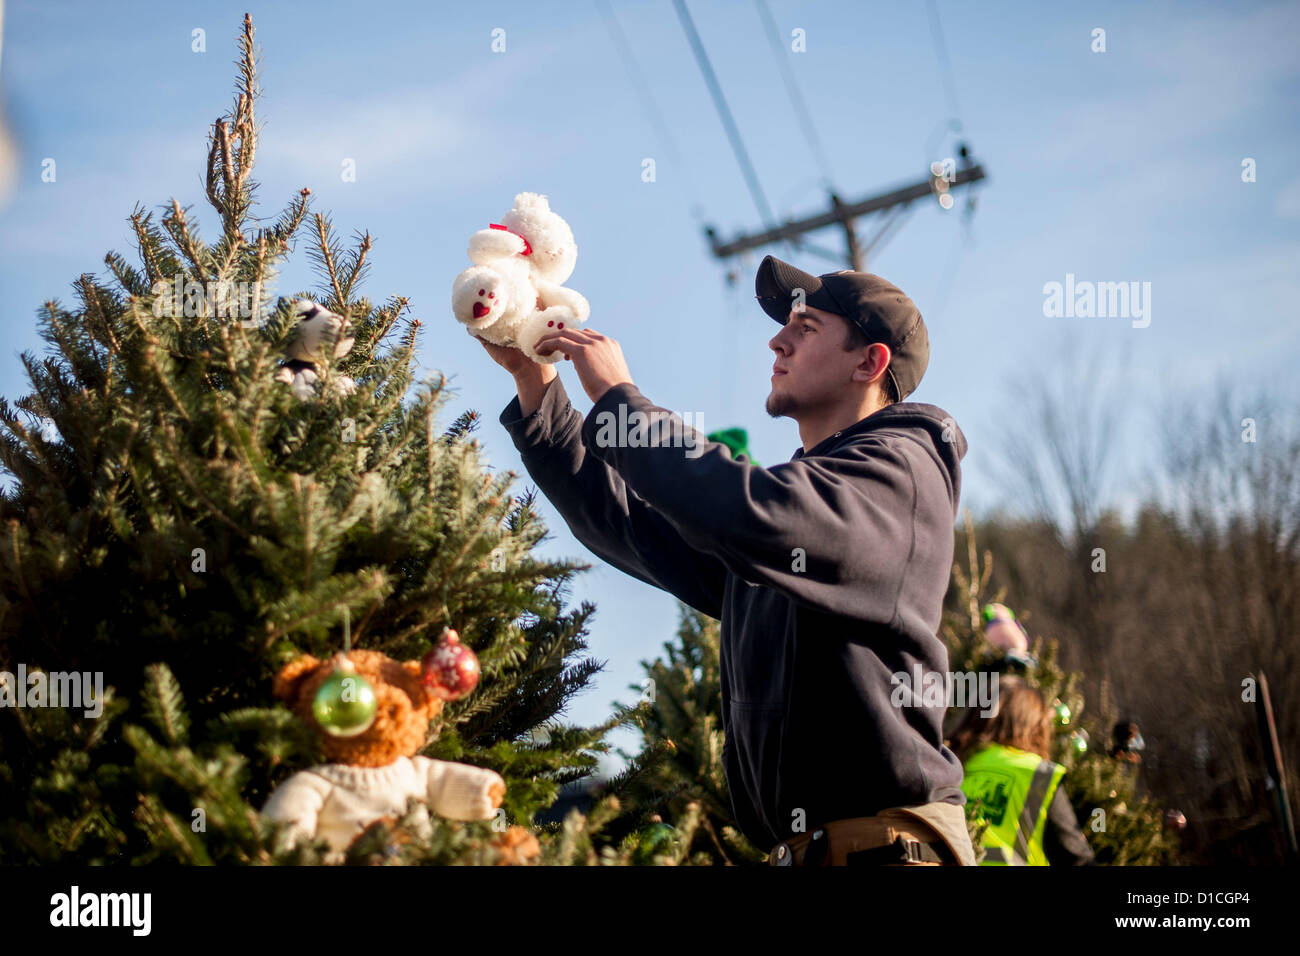 Newtown, CT, USA. 15th Dec, 2012. A Sandy Hook Volunteer Fire Department member places a bear on one of 20 Christmas - Stock Image